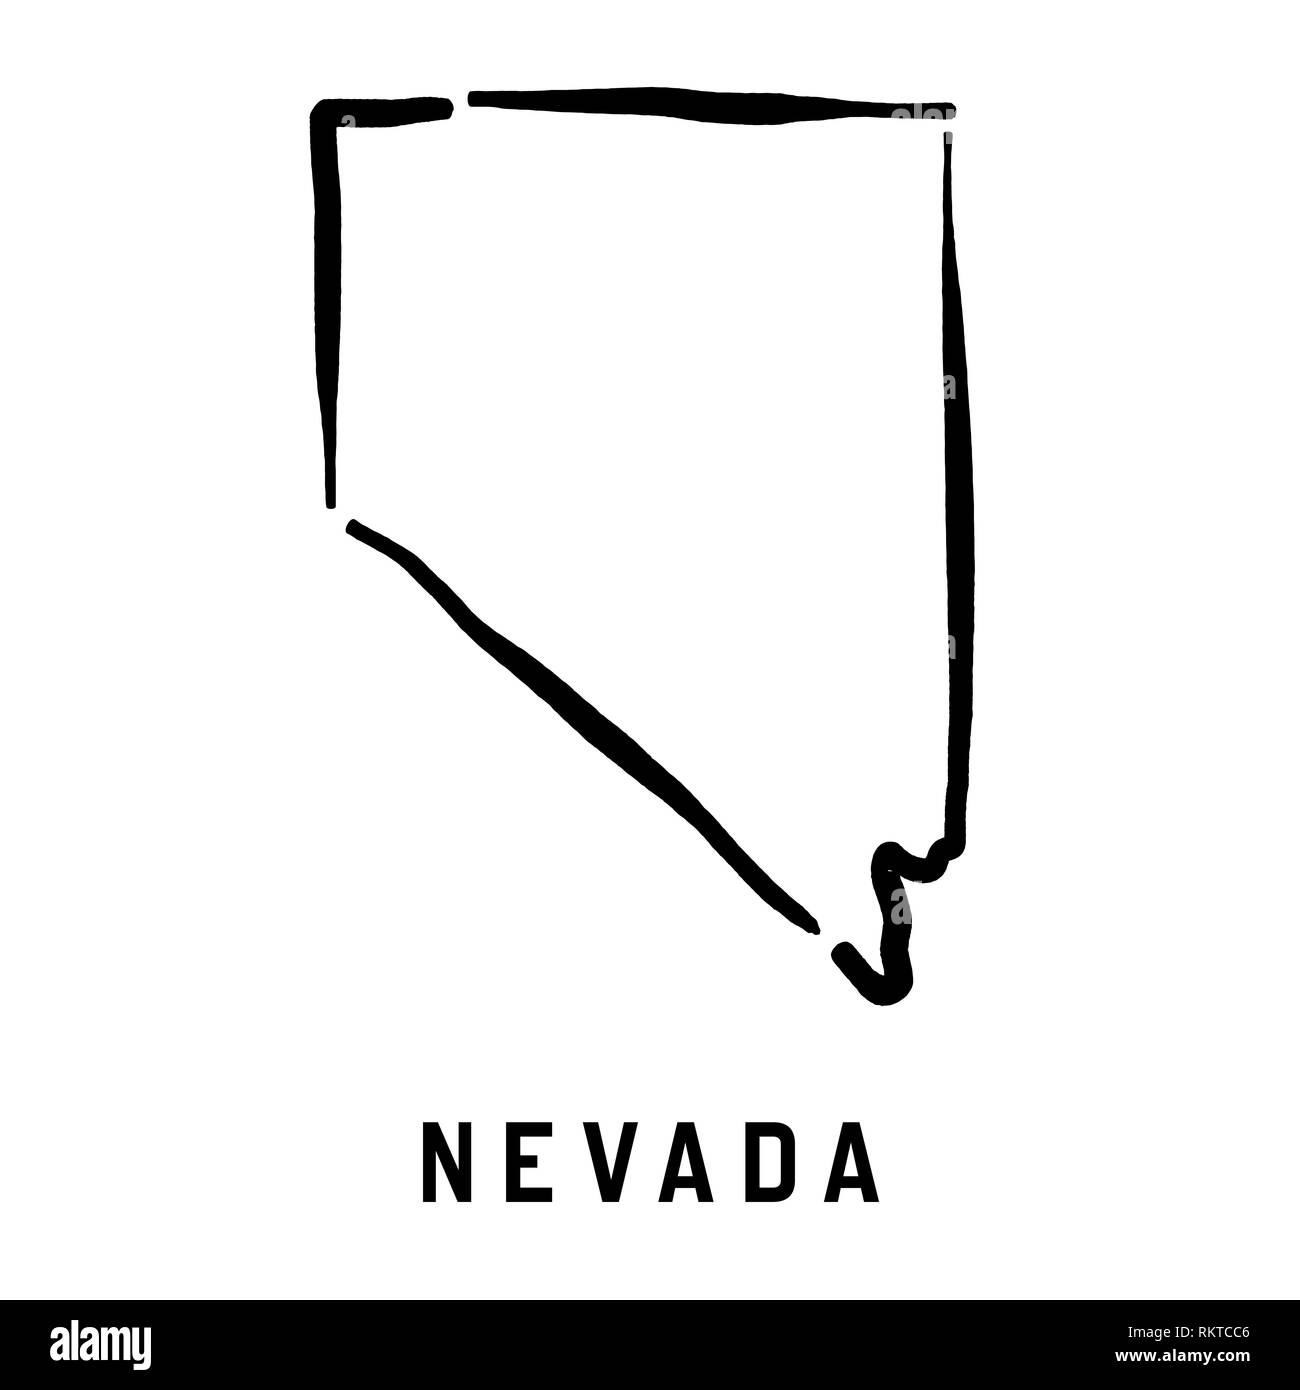 Nevada Simple Logo State Map Outline Smooth Simplified Us State Shape Map Vector Stock Vector Image Art Alamy